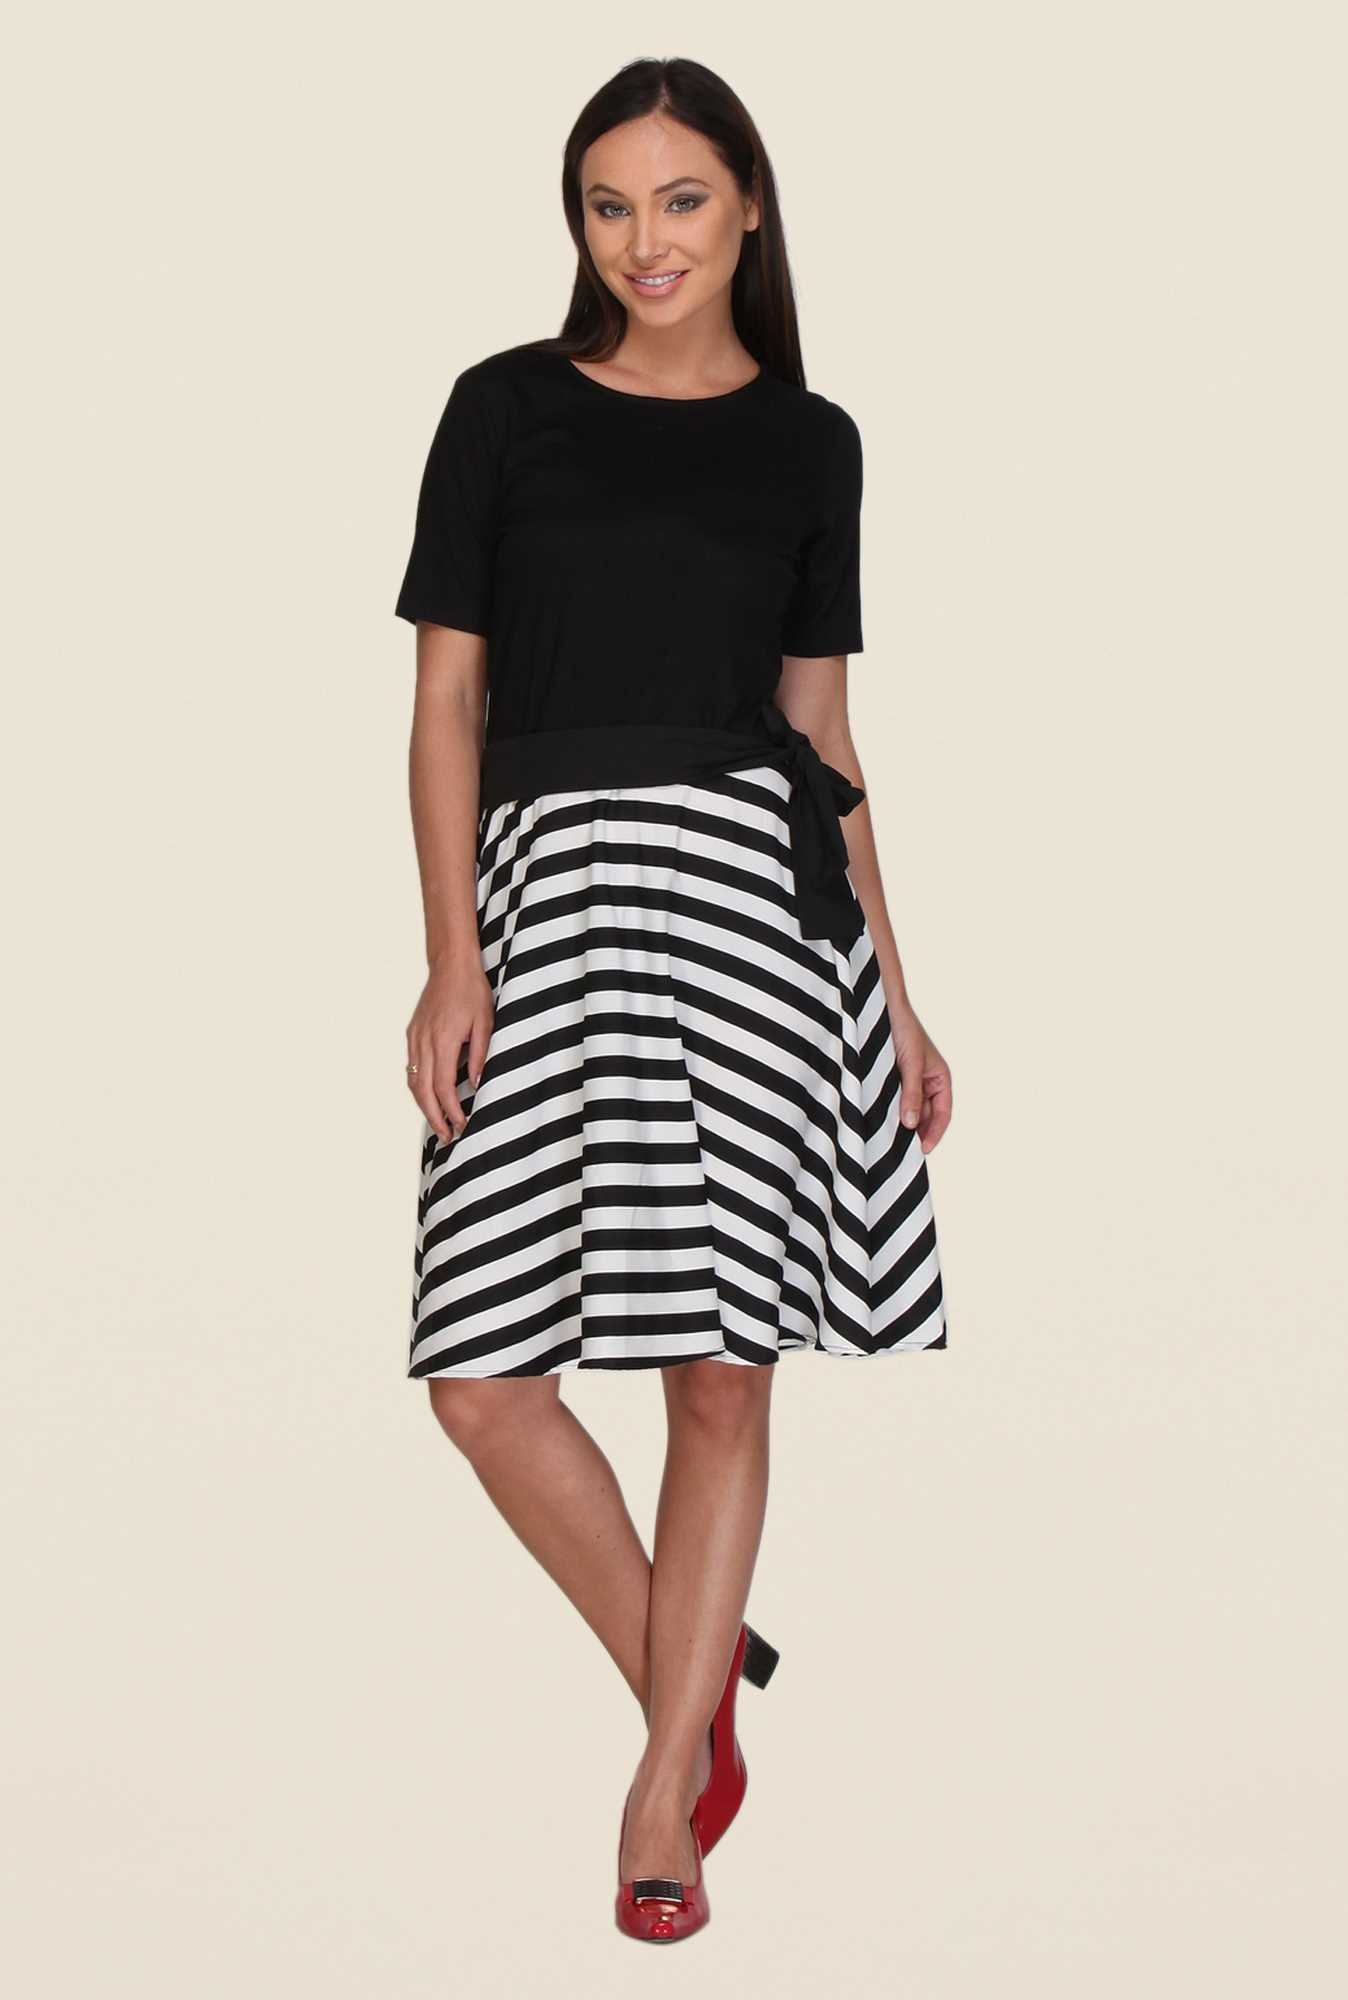 Kaaryah Black & White Printed Dress